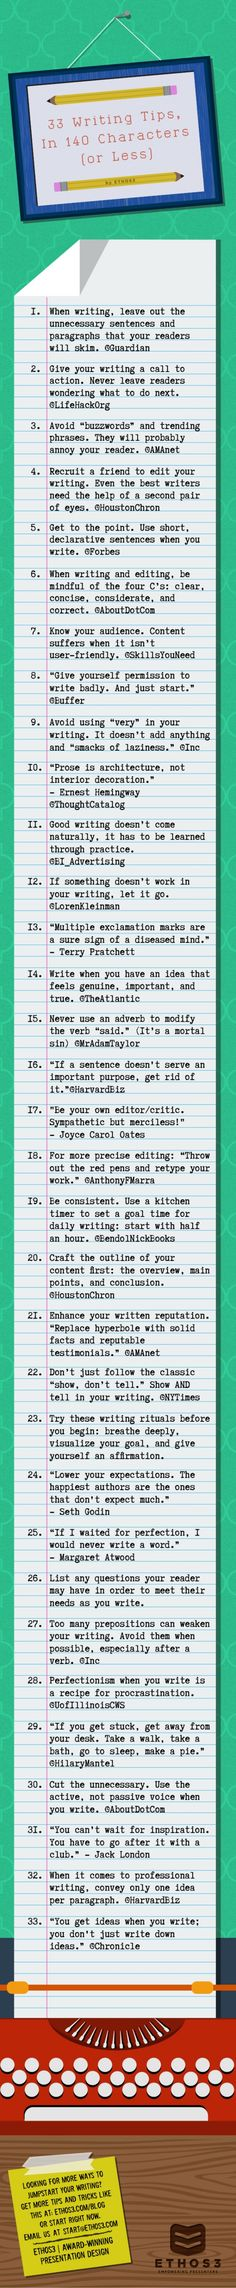 33 Writing Tips in 140 characters or less